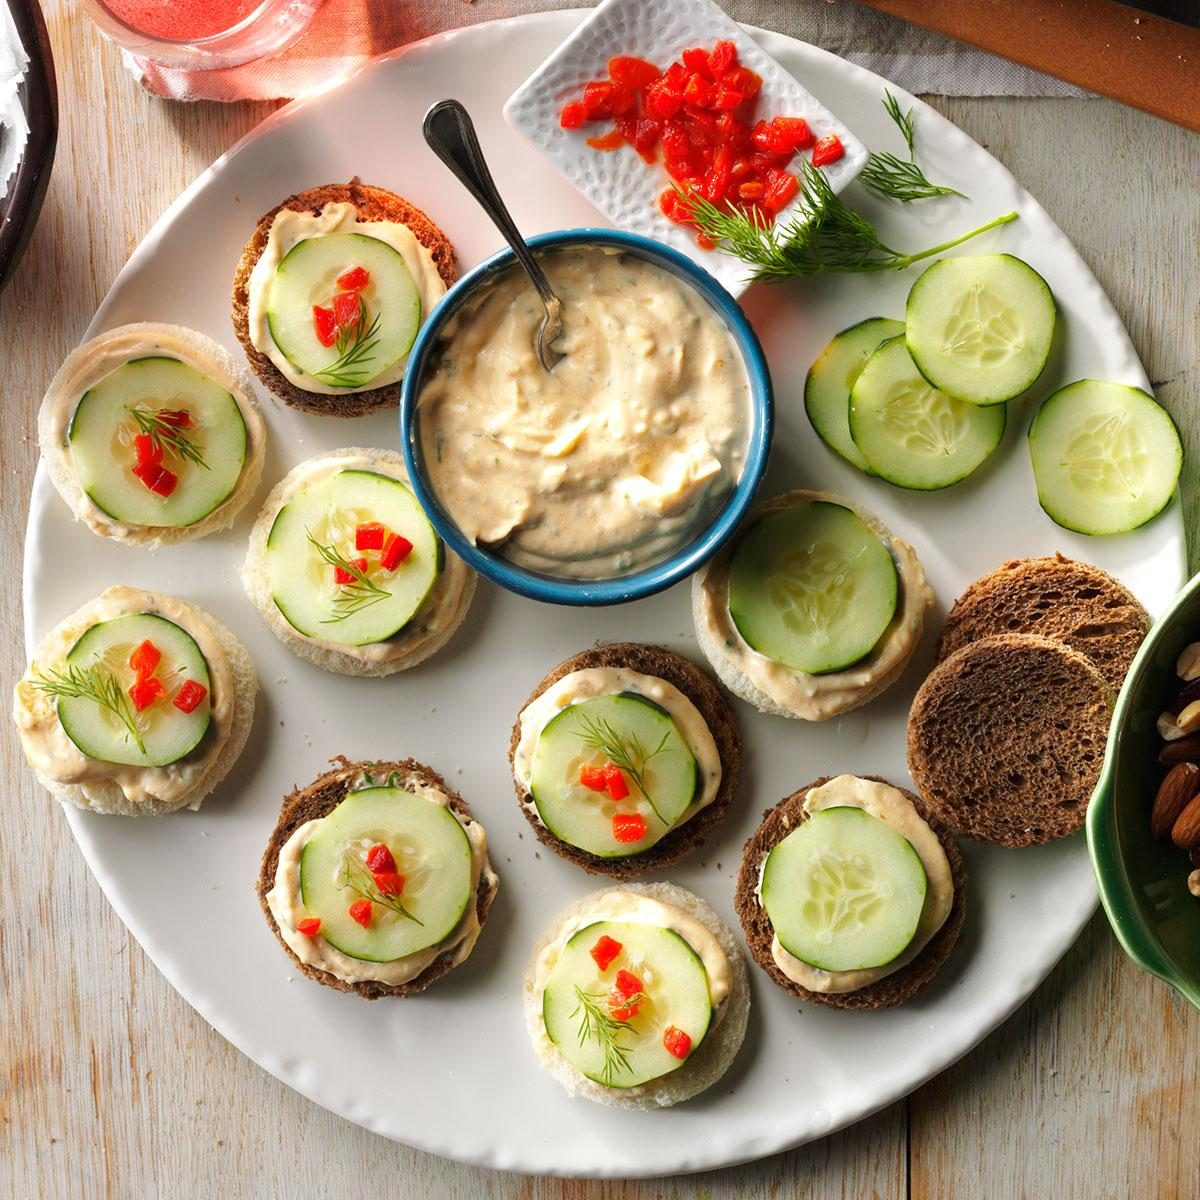 30 last minute snacks that are perfect to bring to an oscars party 30 last minute snacks that are perfect to bring to an oscars party taste of home forumfinder Image collections